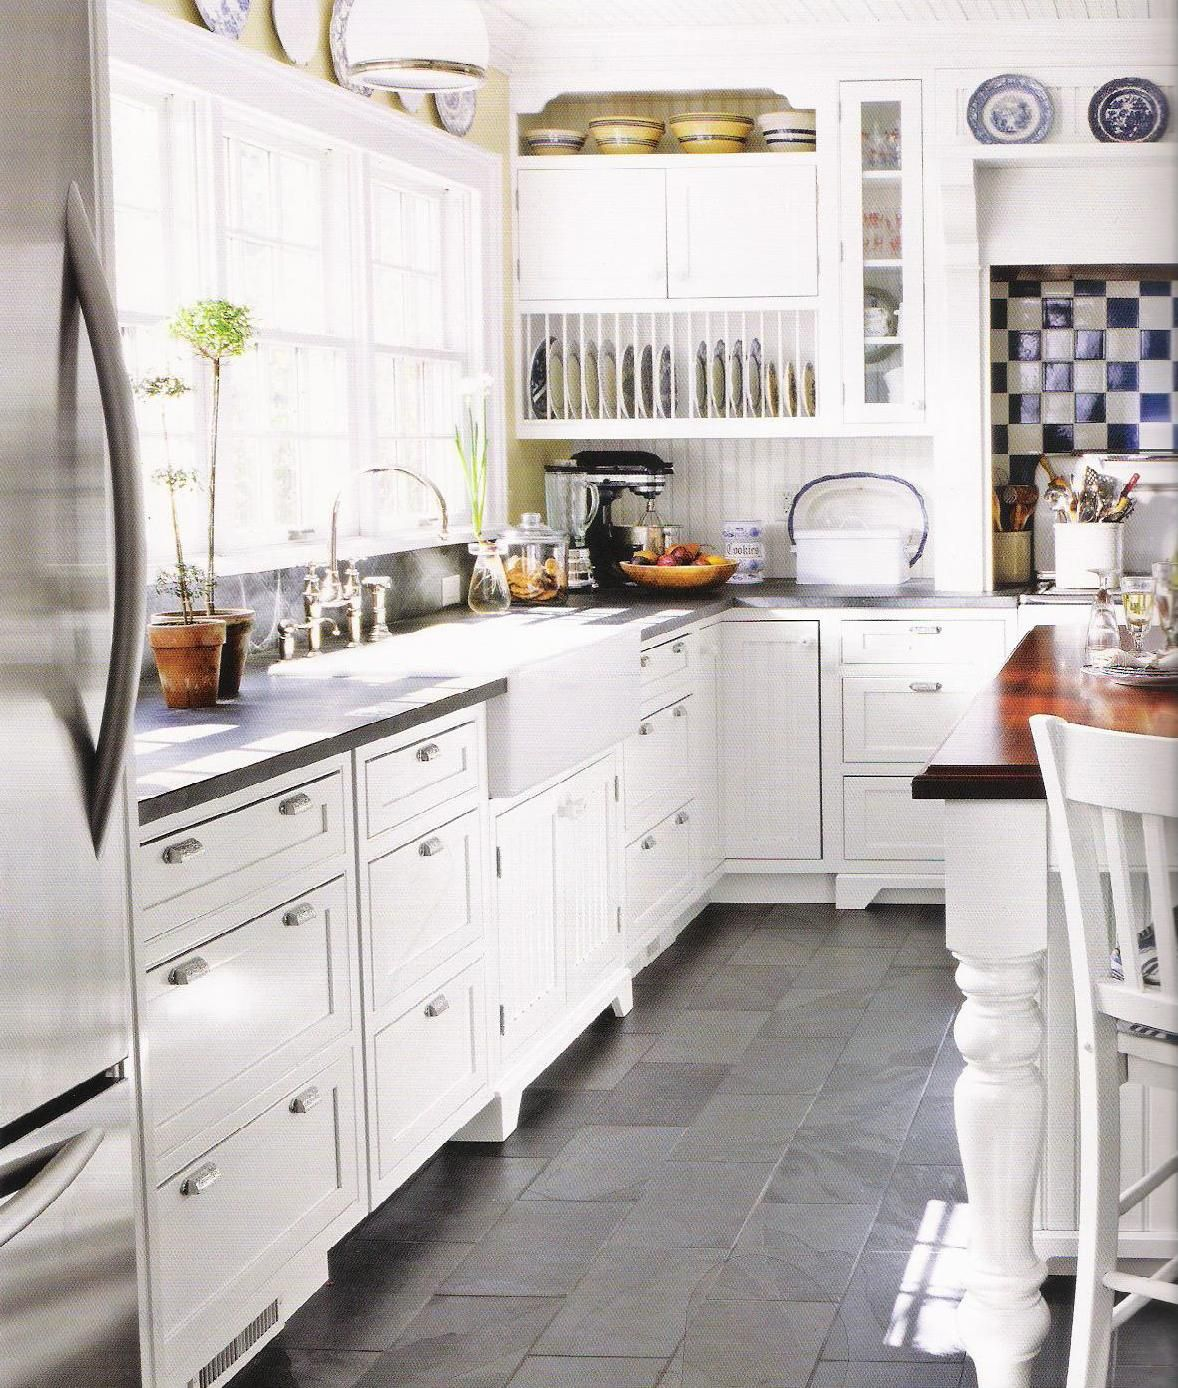 Floor Option With Small Offset Tiles Love The Colors Of This Tile Kitchen Flooring Beige Kitchen Modern Kitchen Tile Floor